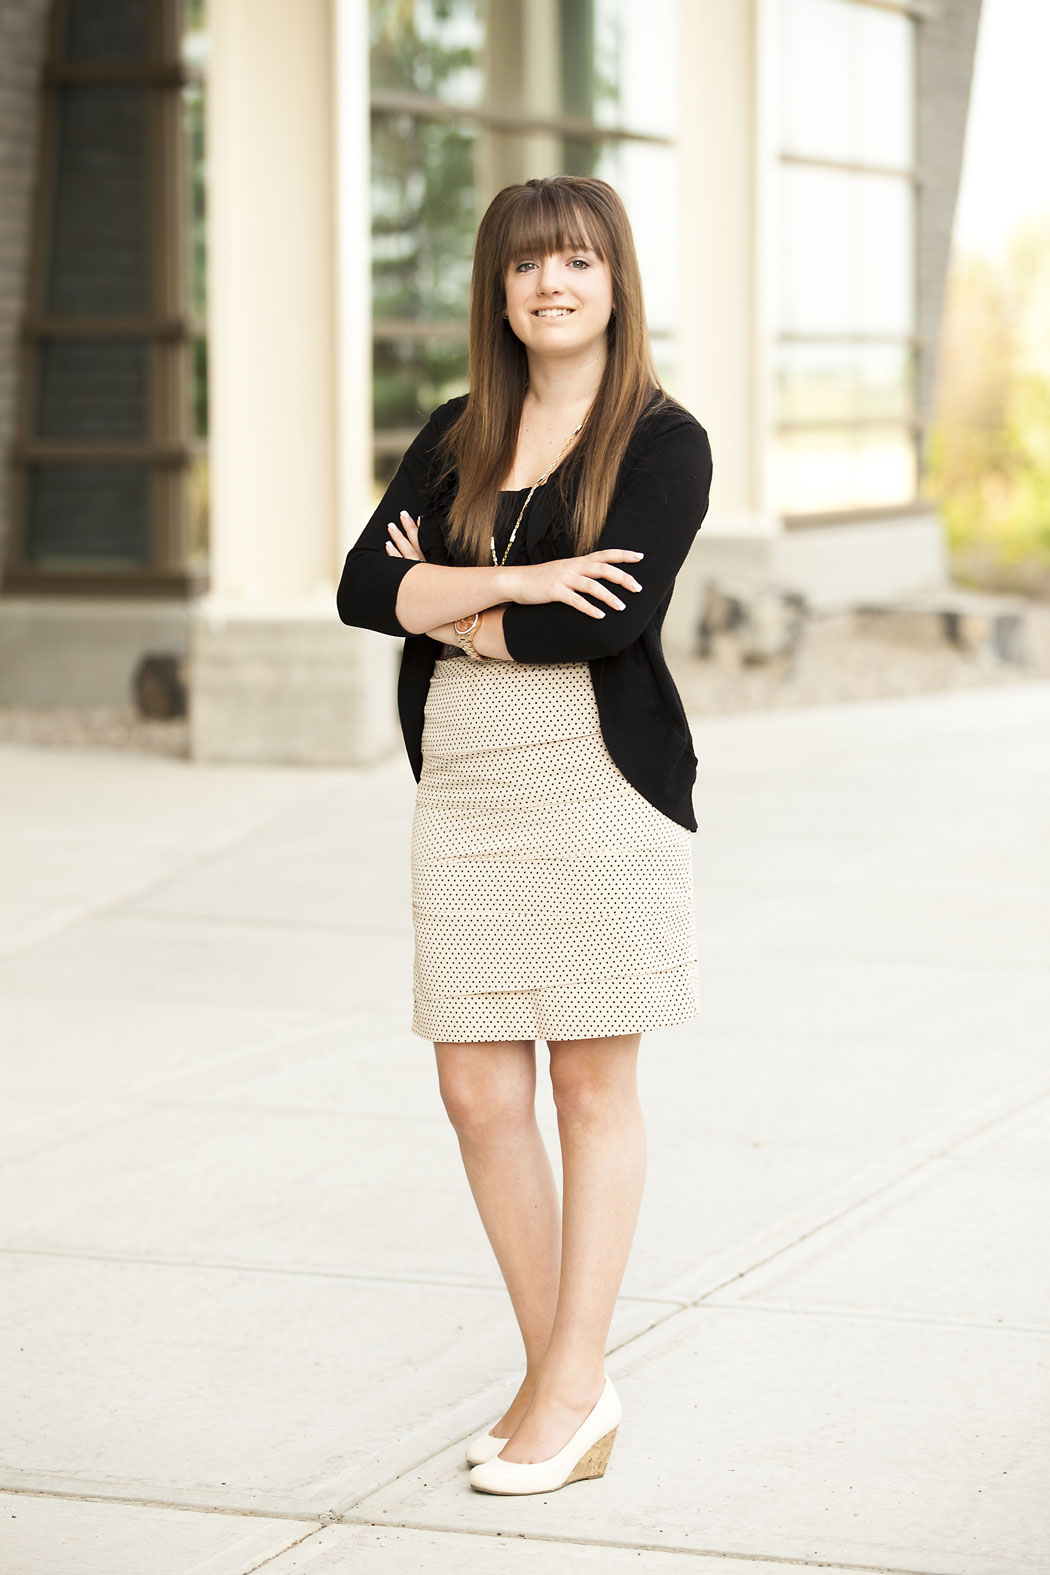 Calgary_Lethbridge_Corporate_Headshot_Photographer